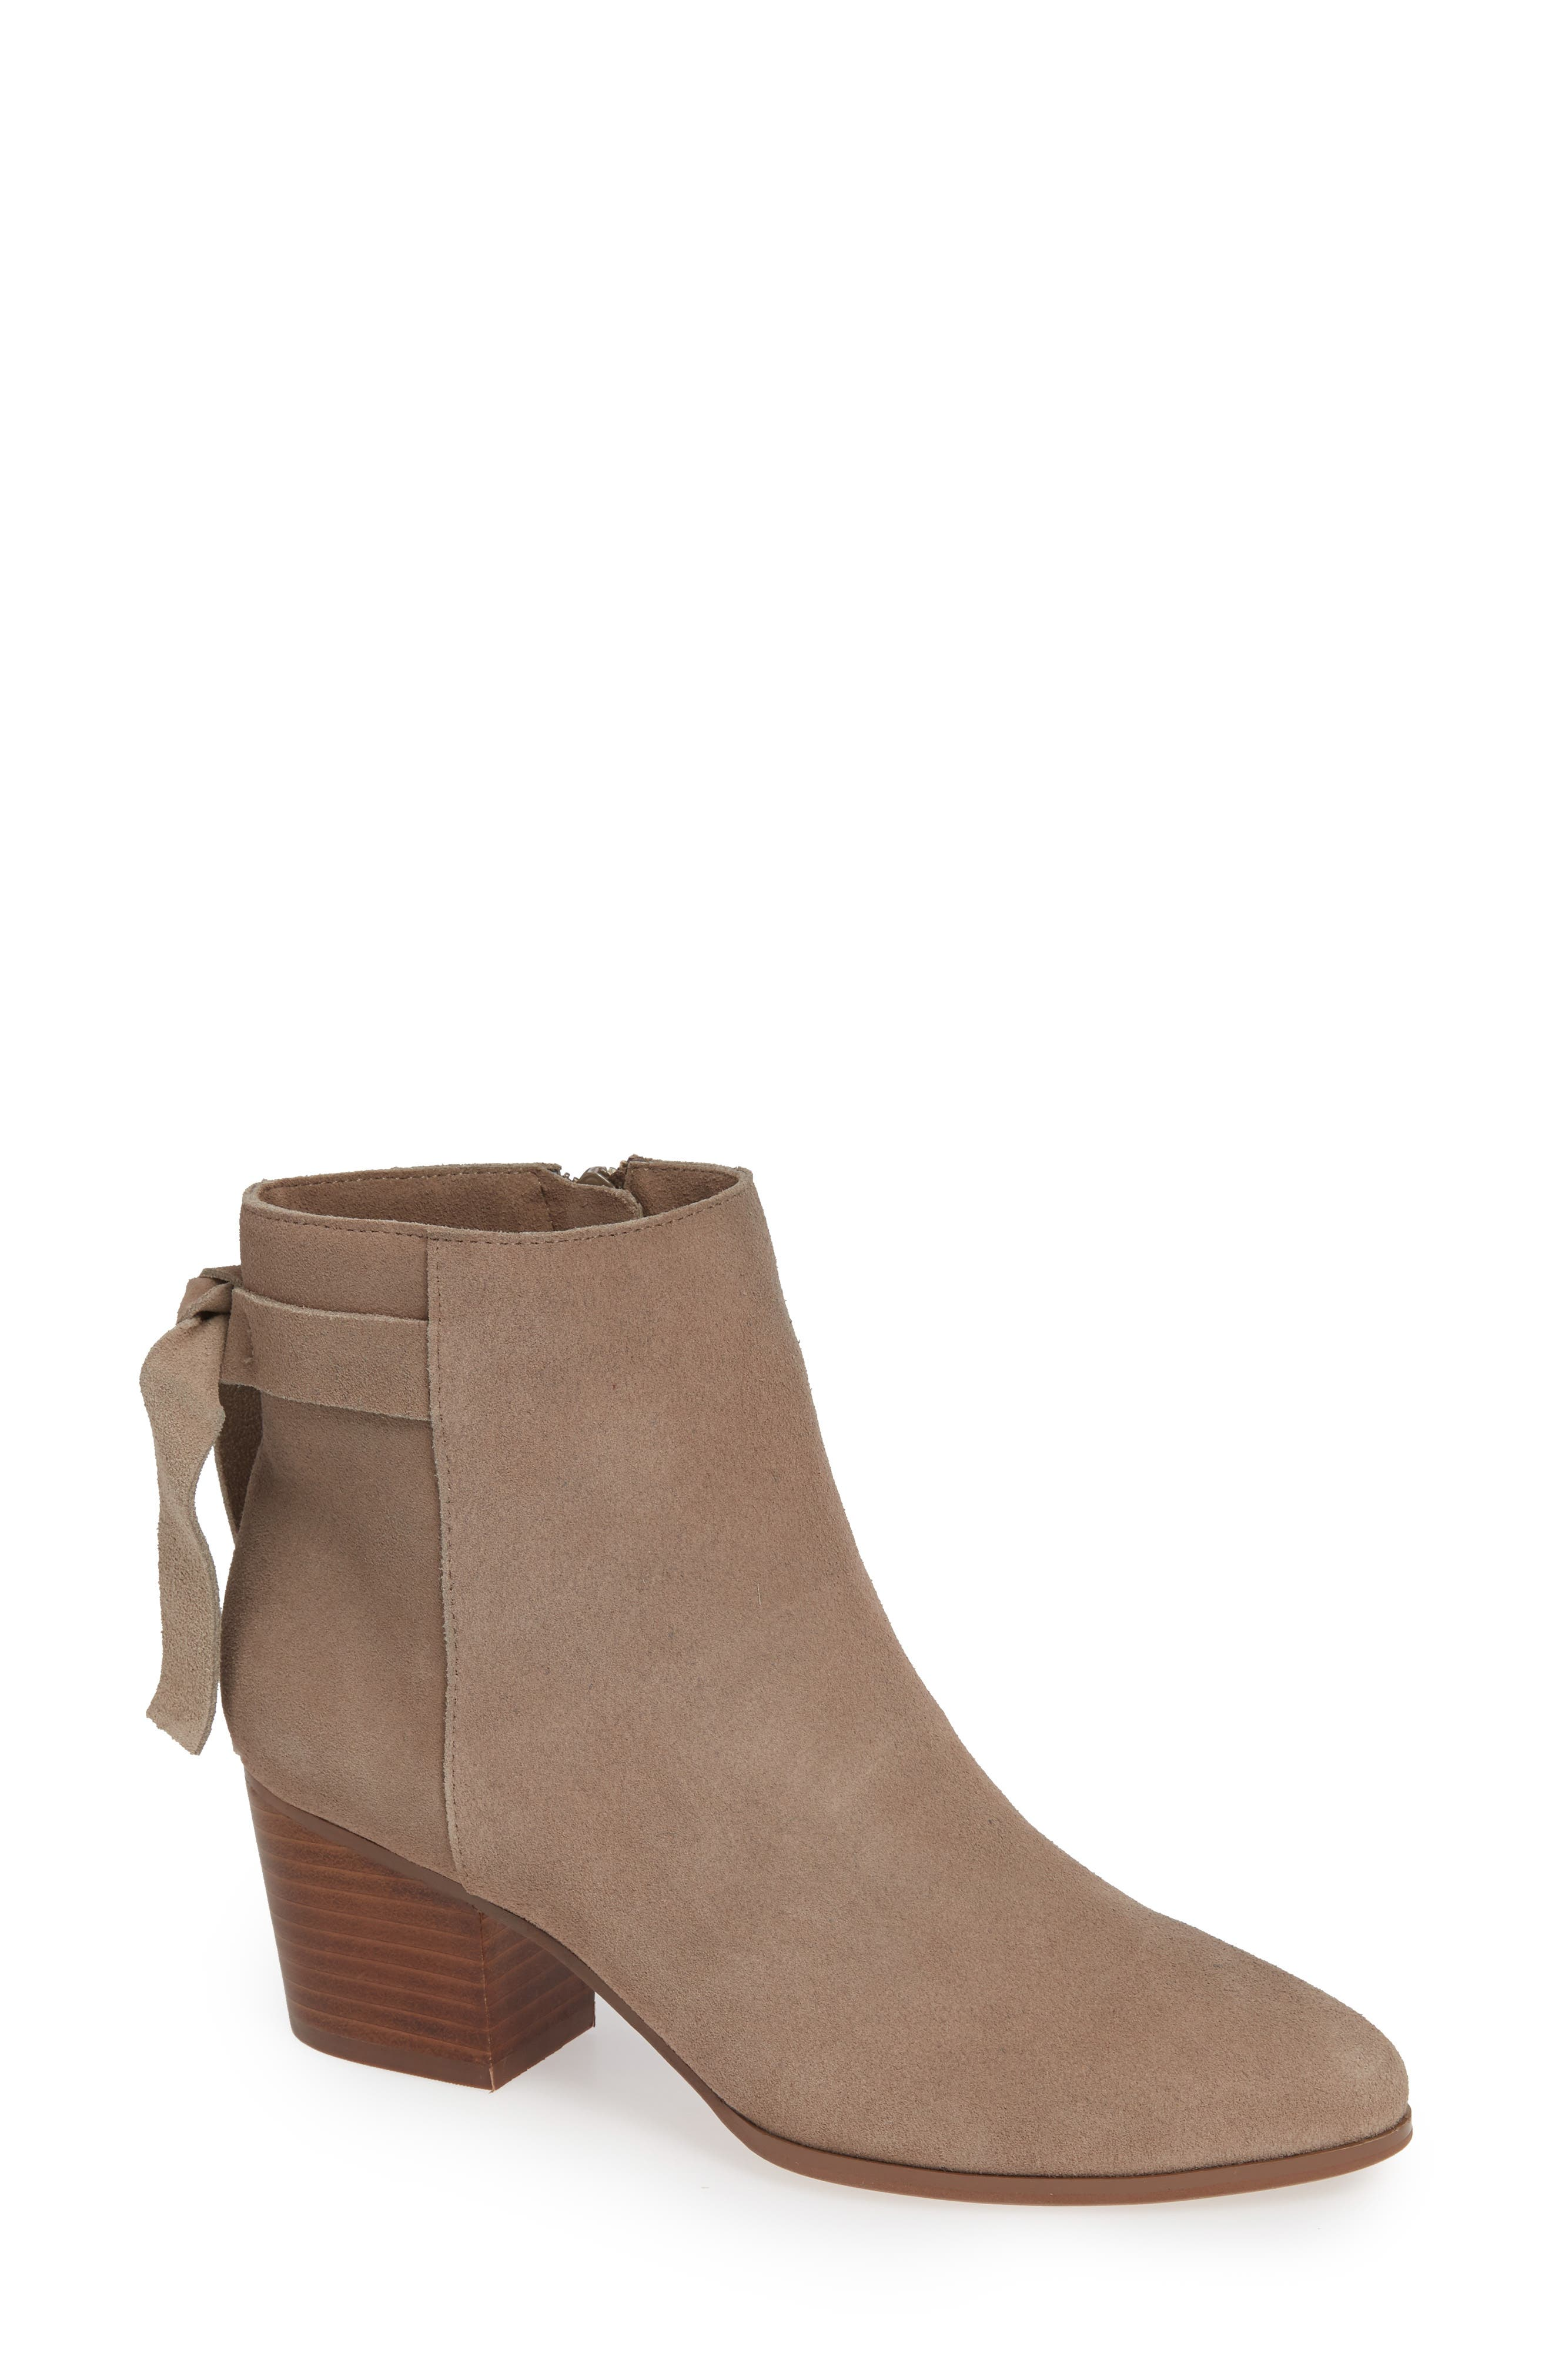 Rhilynn Bootie,                             Main thumbnail 1, color,                             FALL TAUPE SUEDE